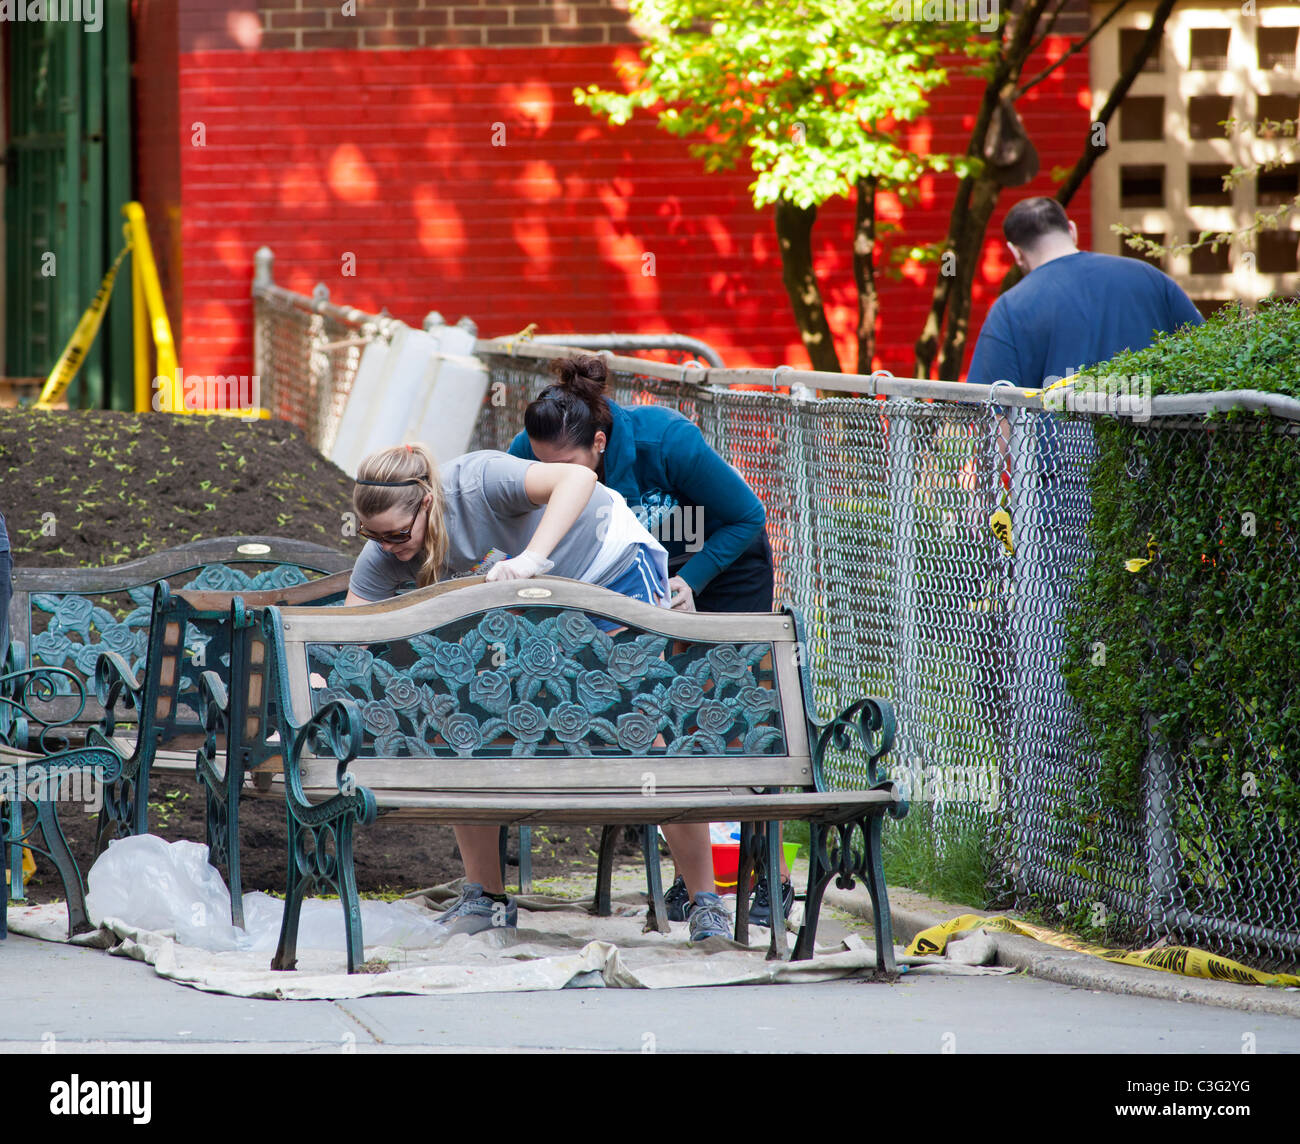 stock photo volunteers refinish garden furniture for a garden at a public school in new york